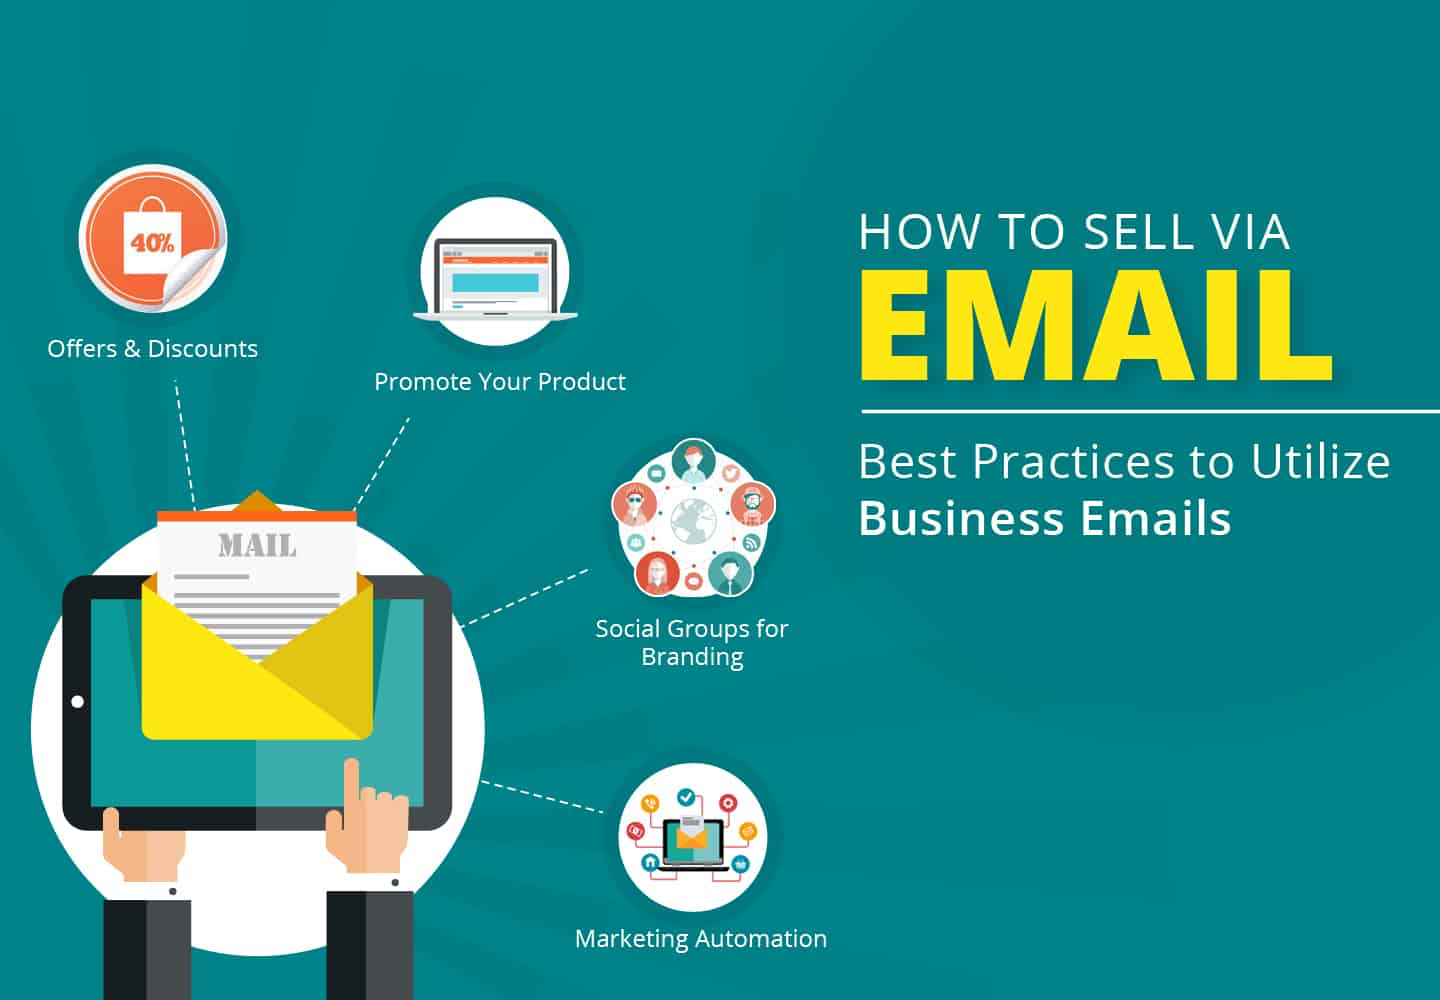 Tips on how to sell over email